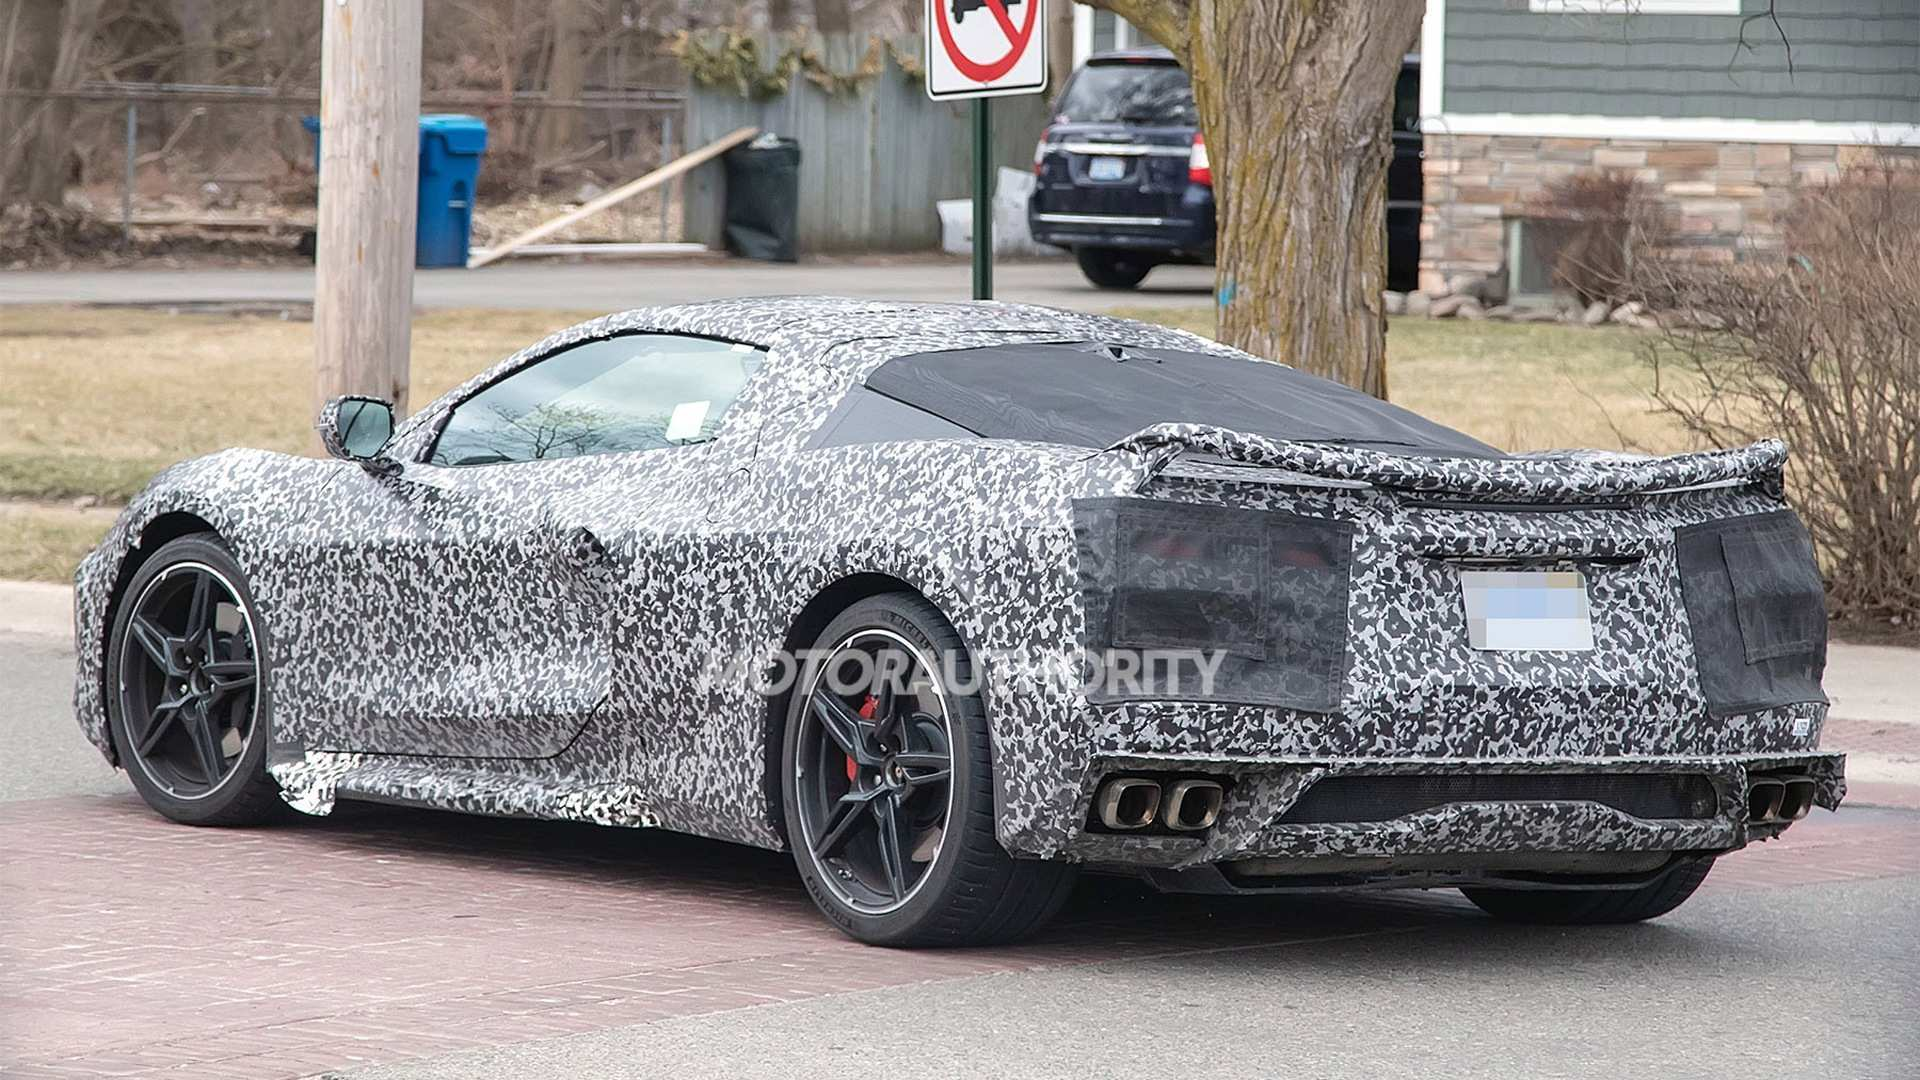 76 The Pictures Of The 2020 Chevrolet Corvette Style